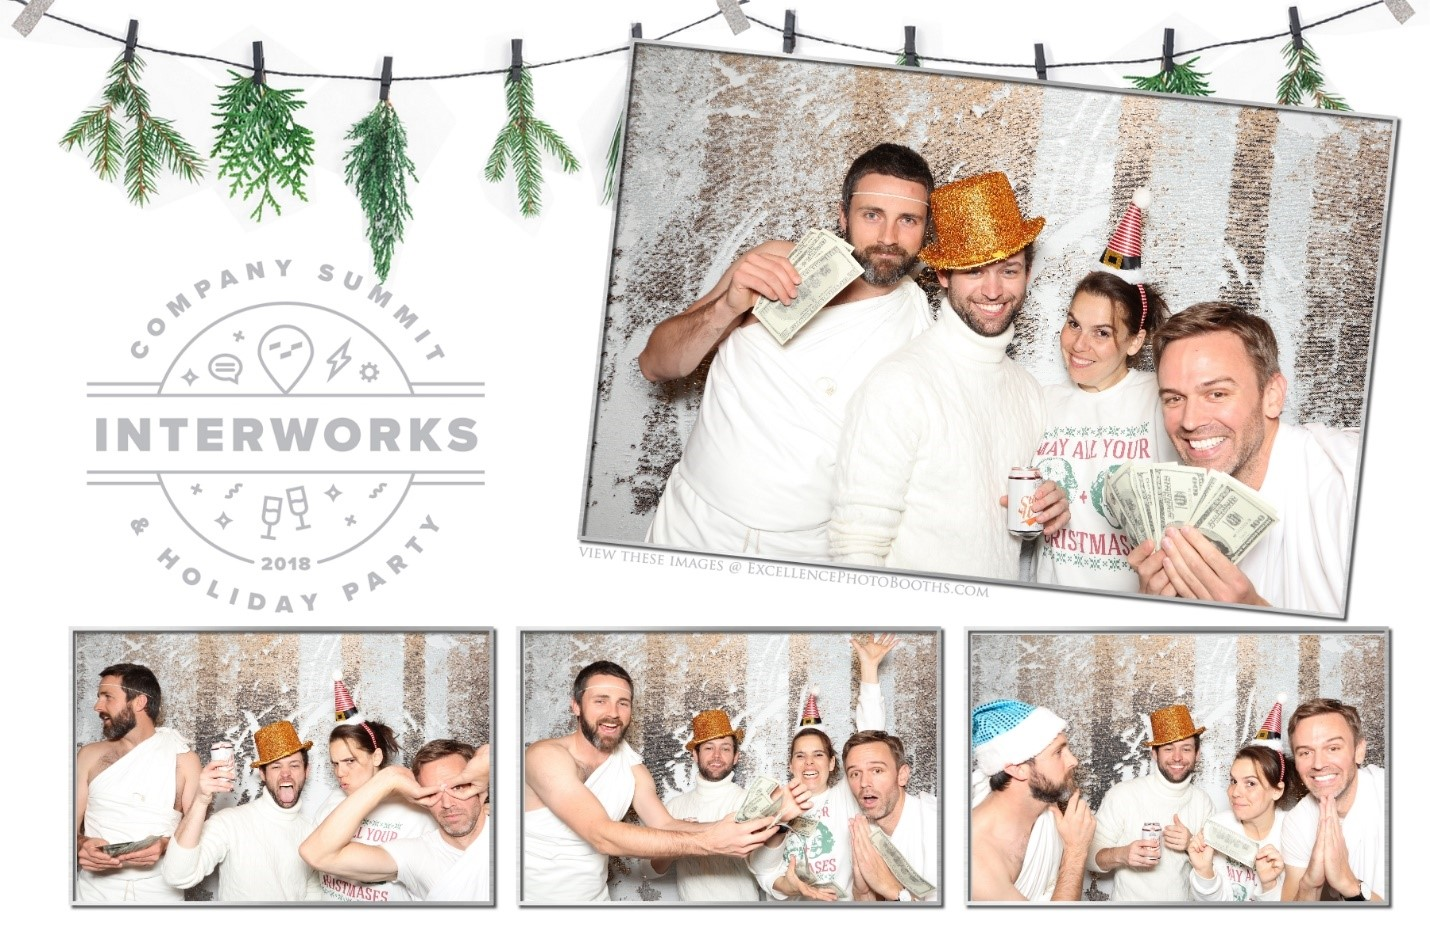 InterWorks remote employees at Holiday Party